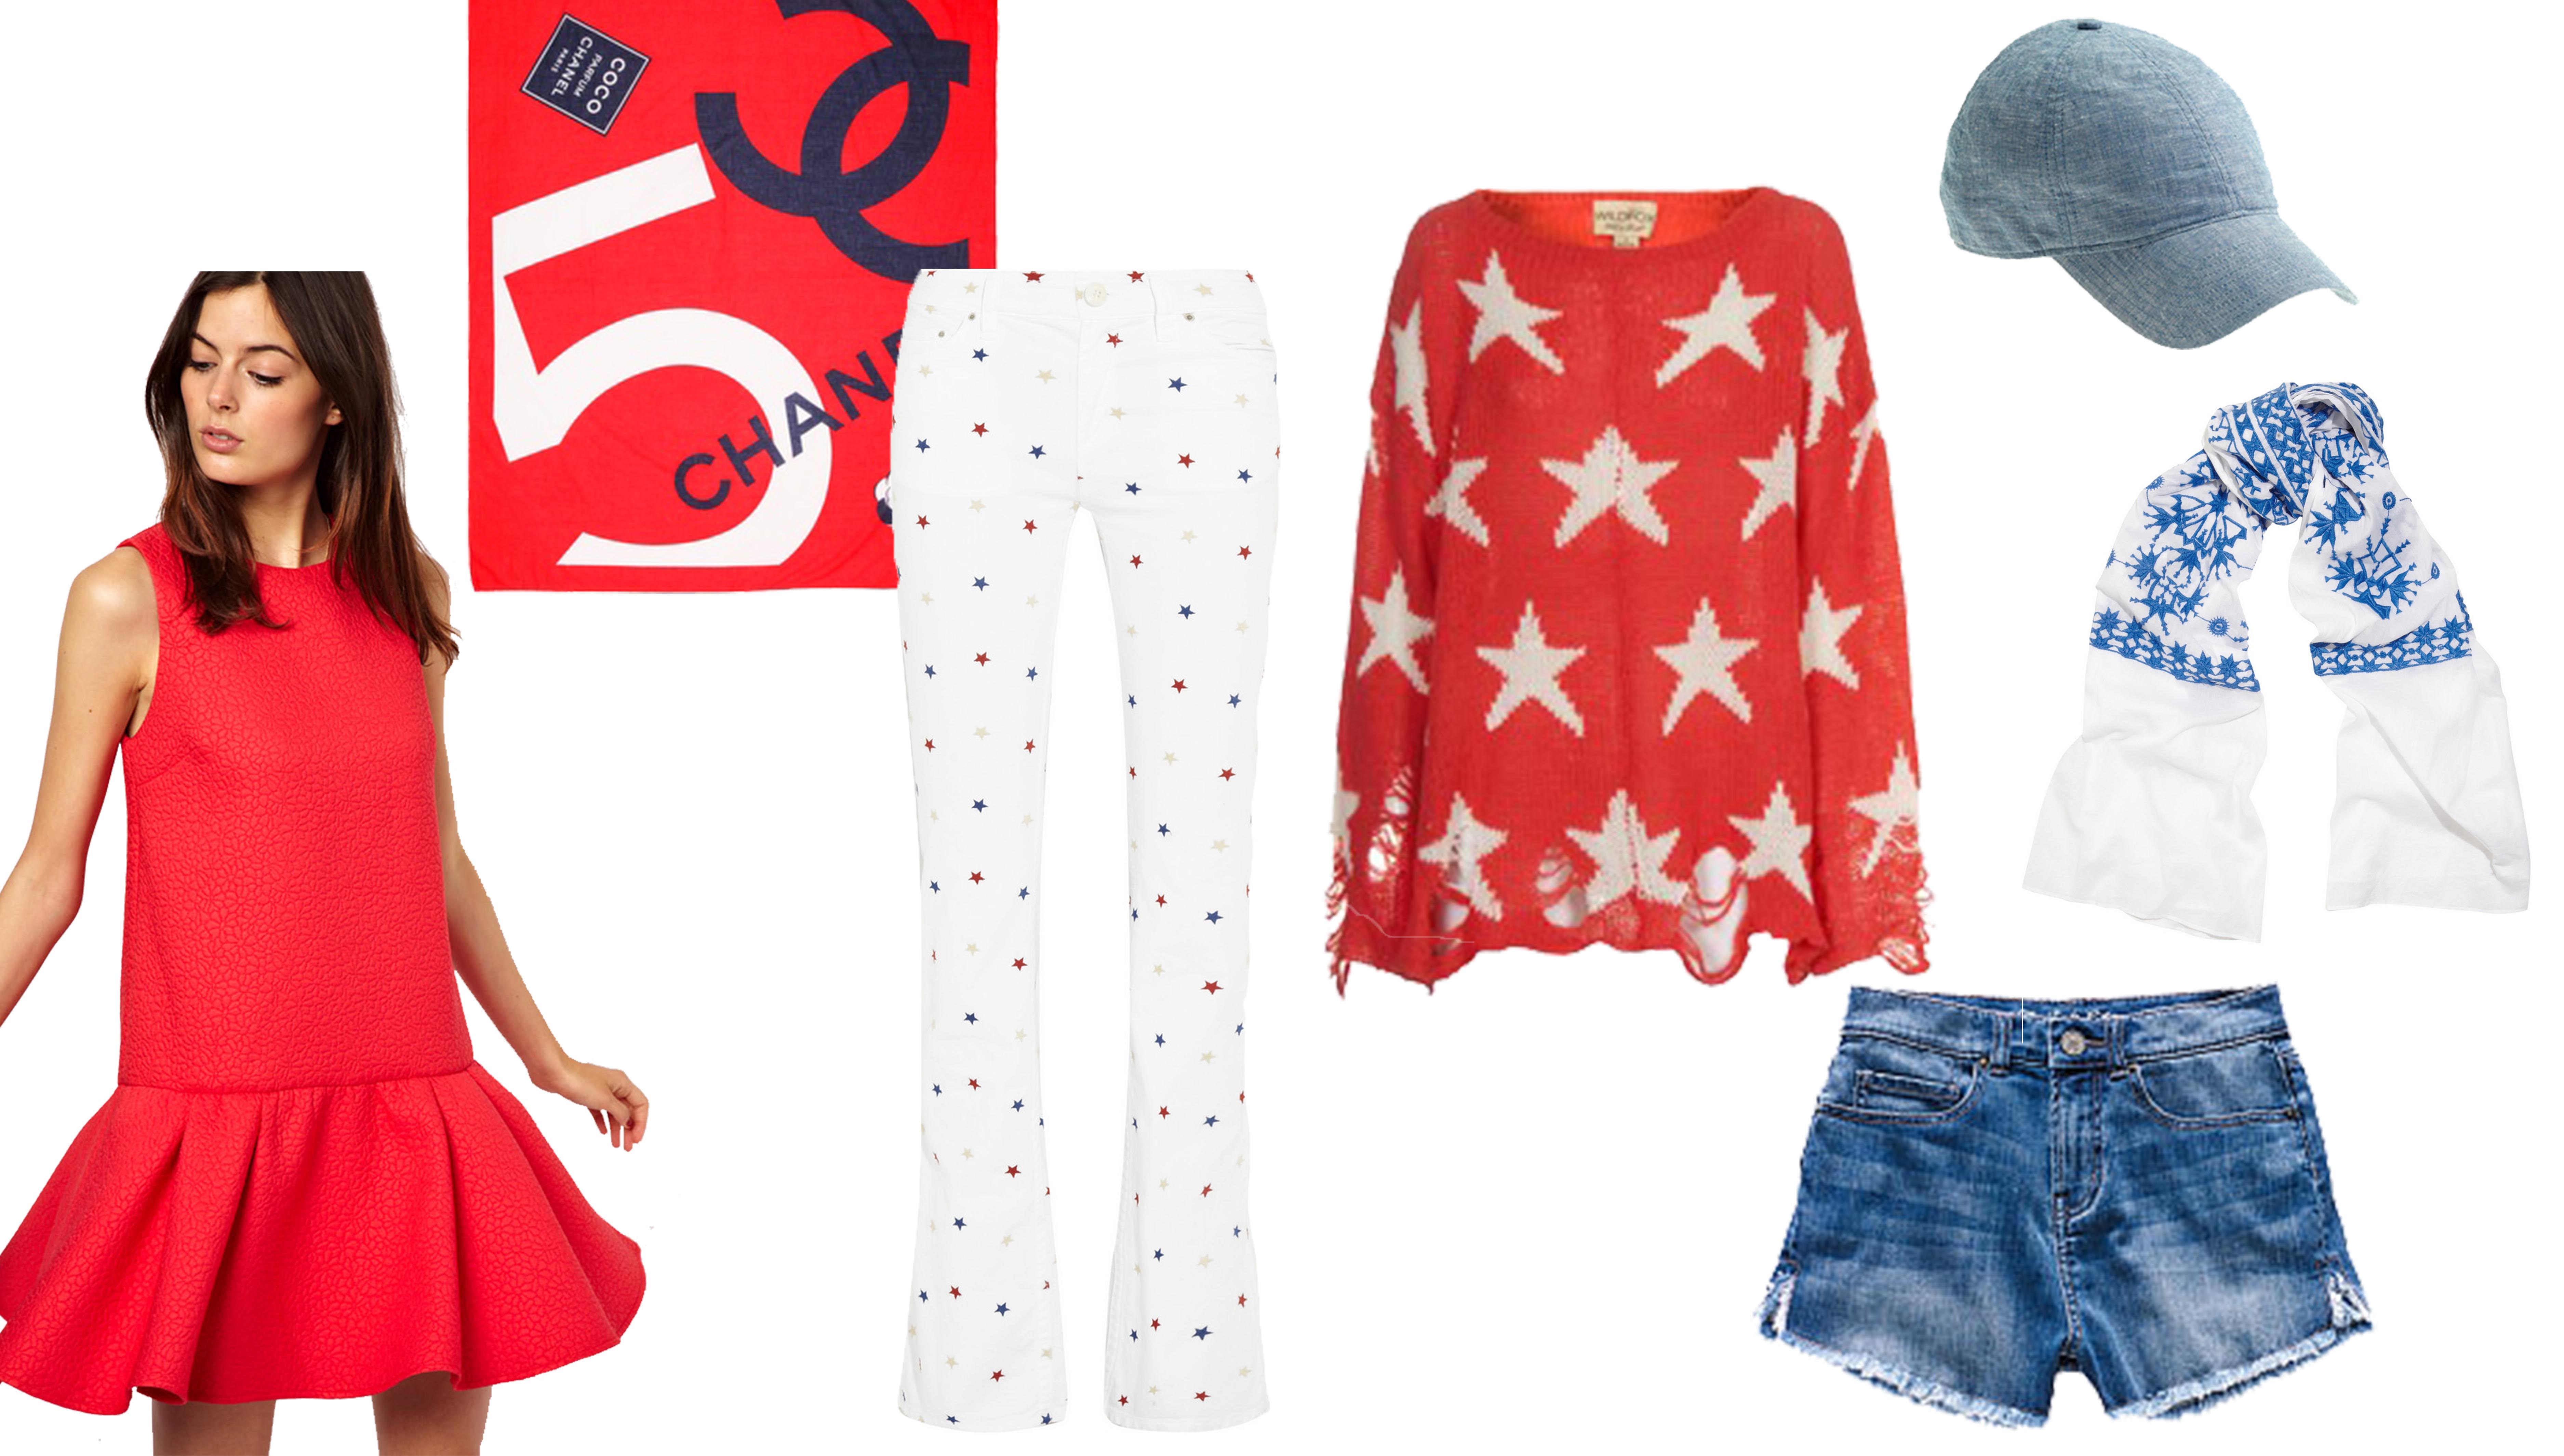 20 ideas for your 4th of July outfit